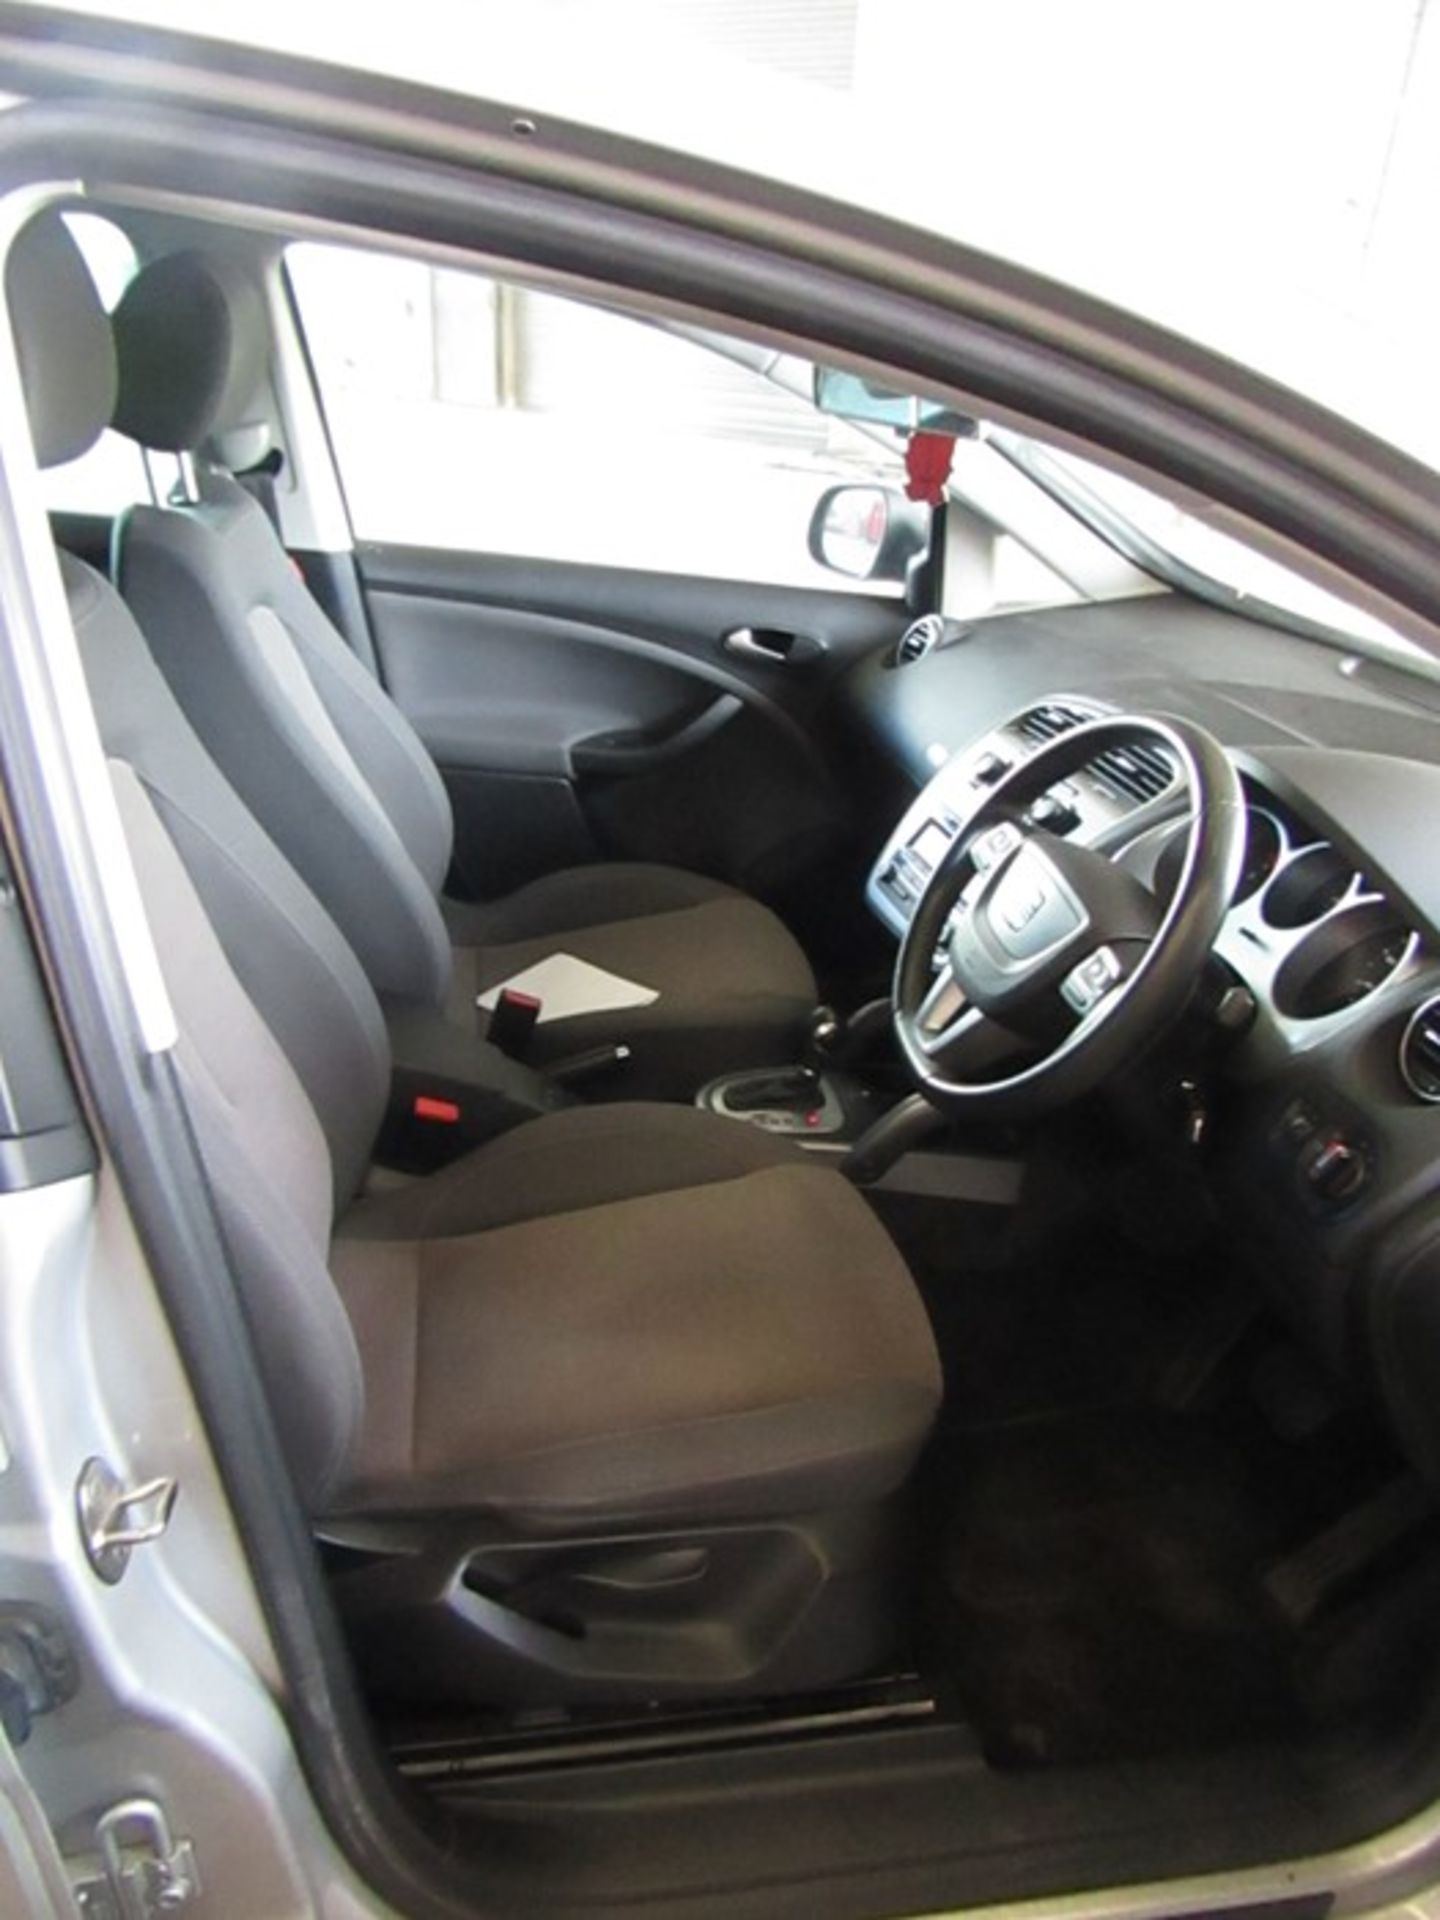 2011 Seat Althea SE CR TDI Auto, 1.6TDI, 47,678 miles (unchecked but appears to be inline with the - Image 11 of 17